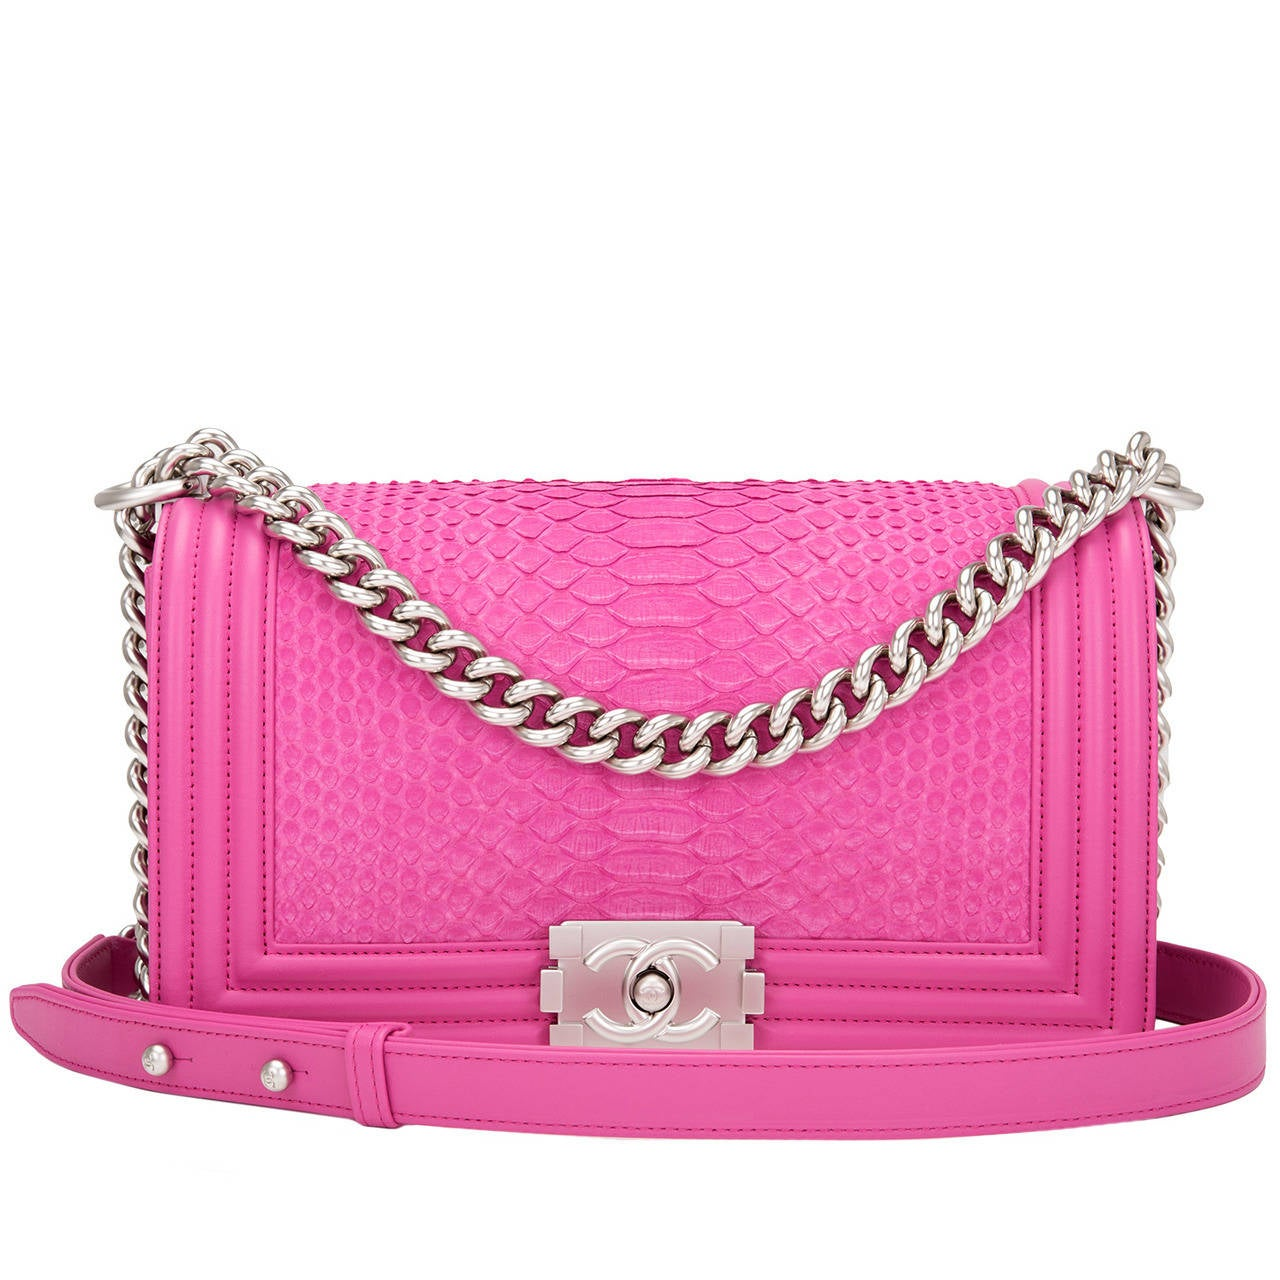 06f9d3811f4b Chanel Pink Handbag Prices   Stanford Center for Opportunity Policy ...